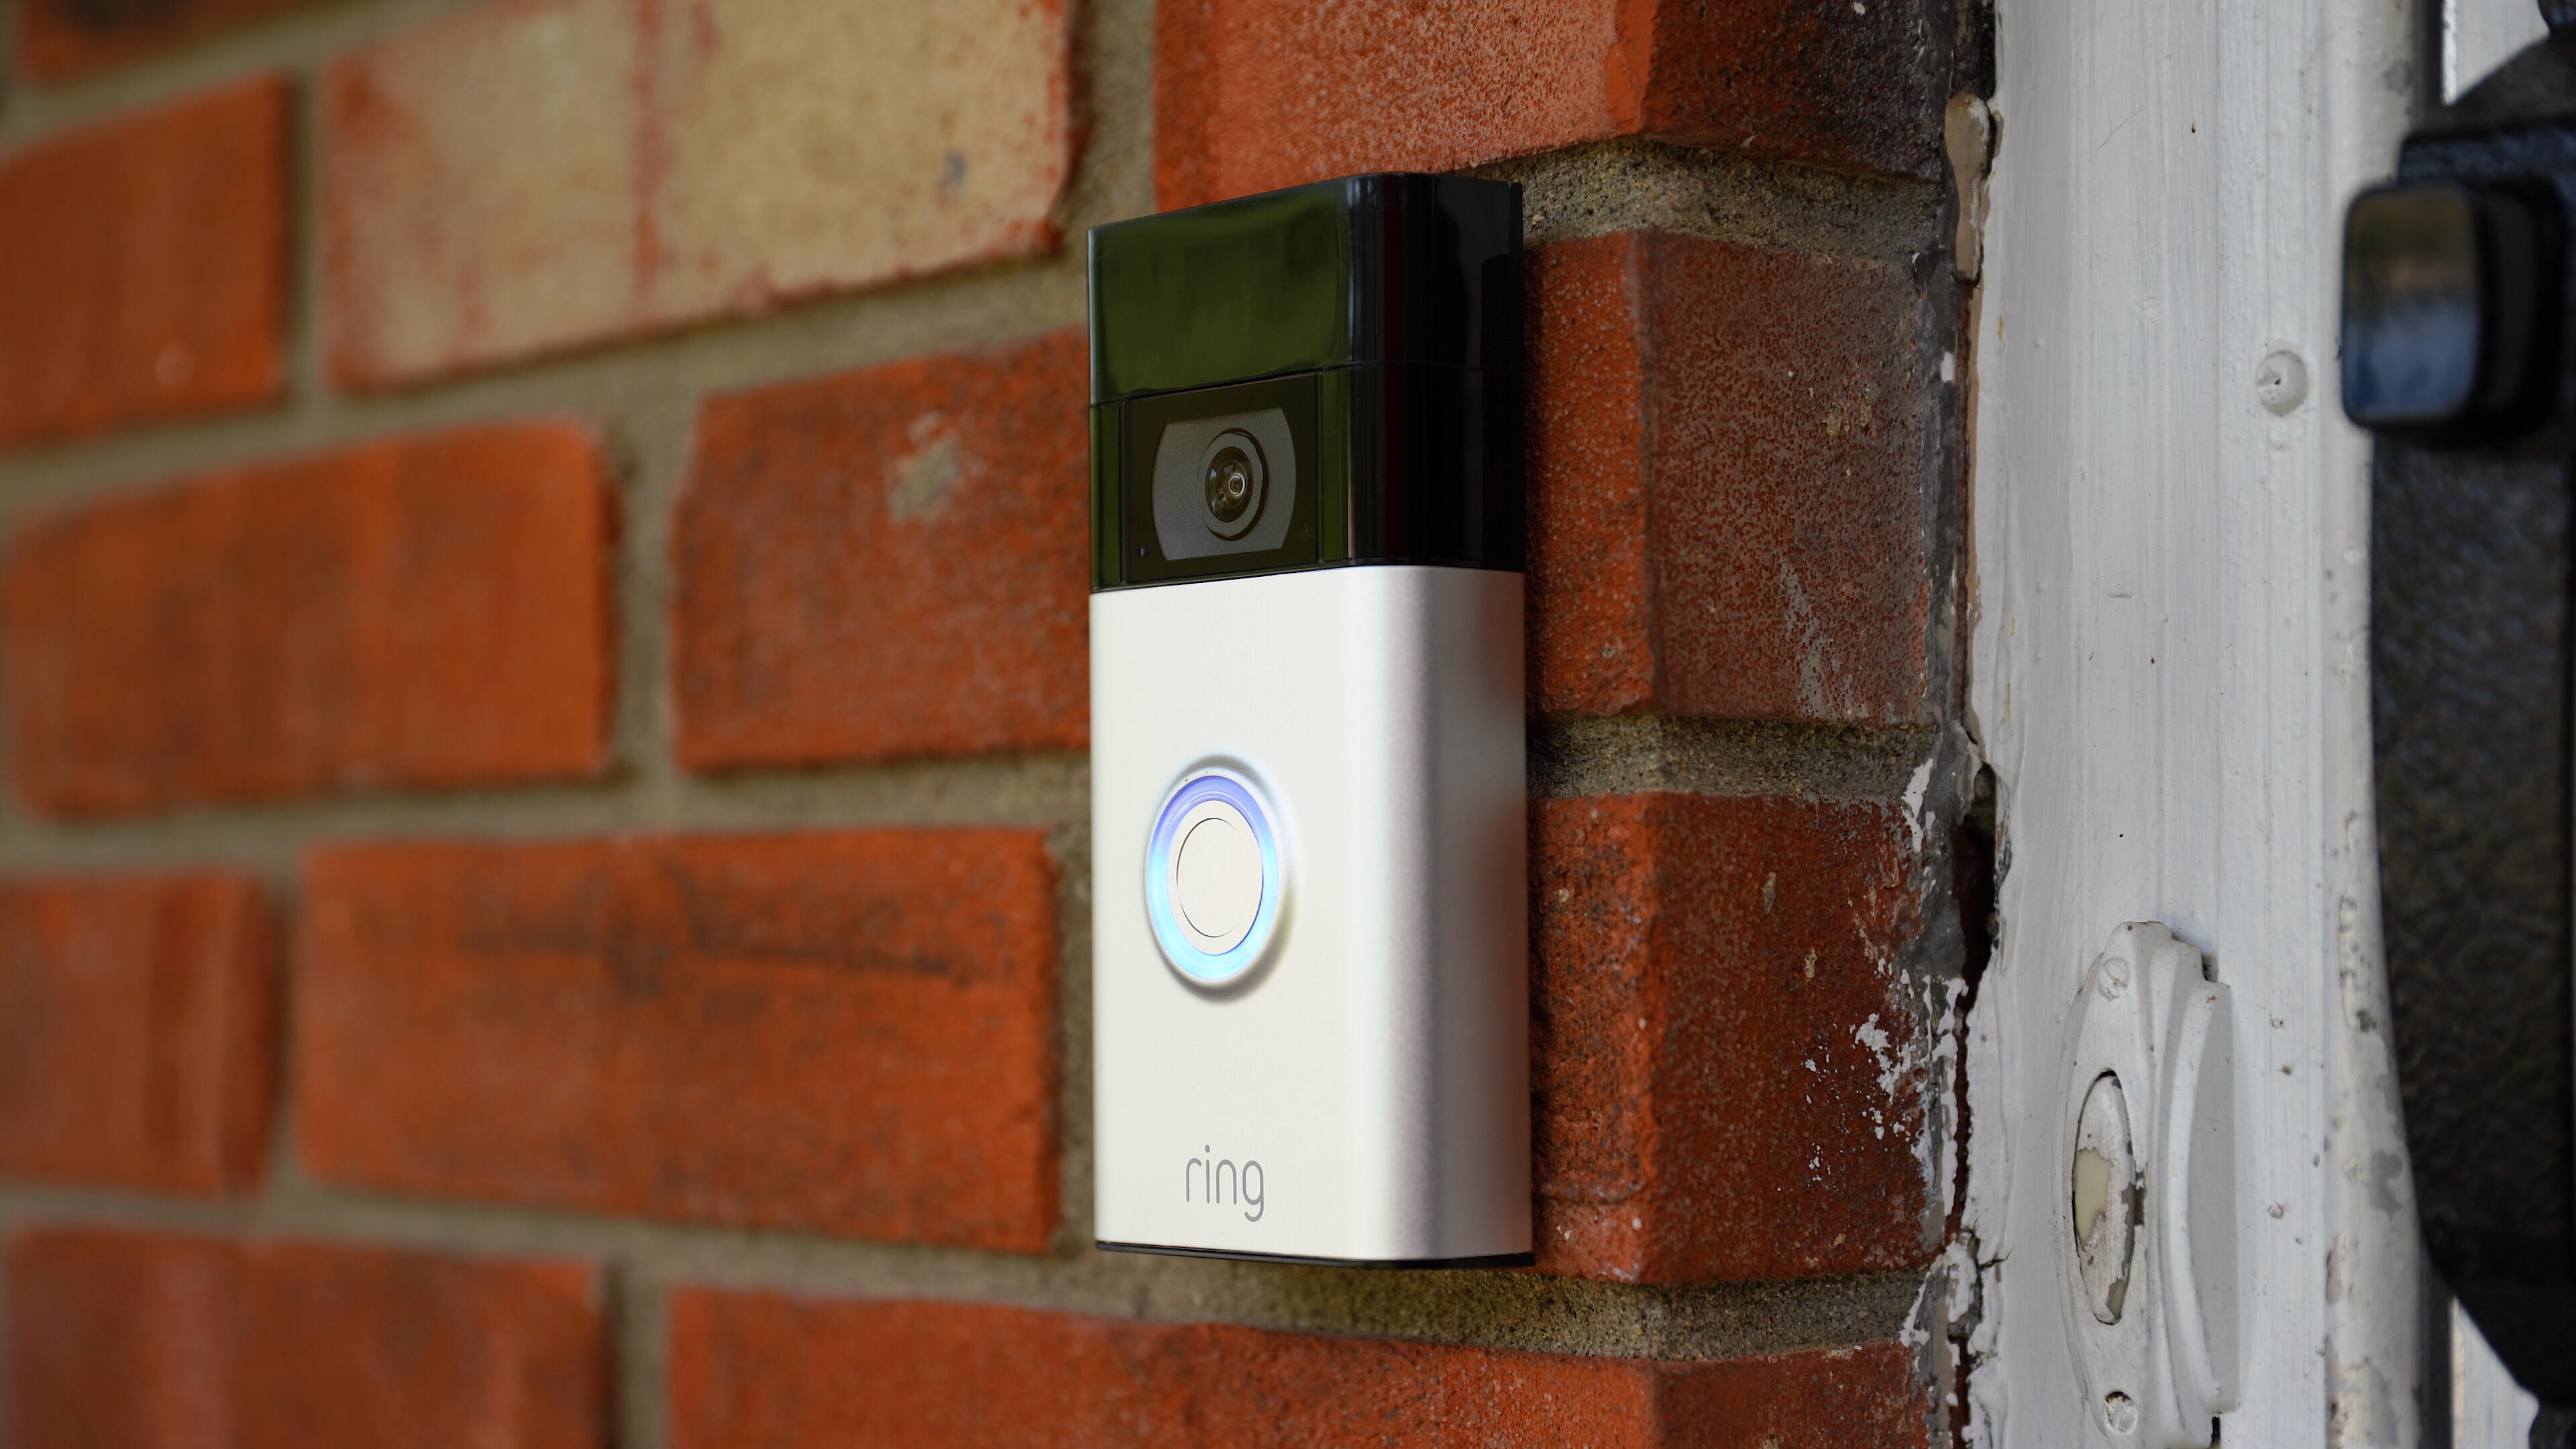 Video: Ring's newest old doorbell delivers affordable porch monitoring